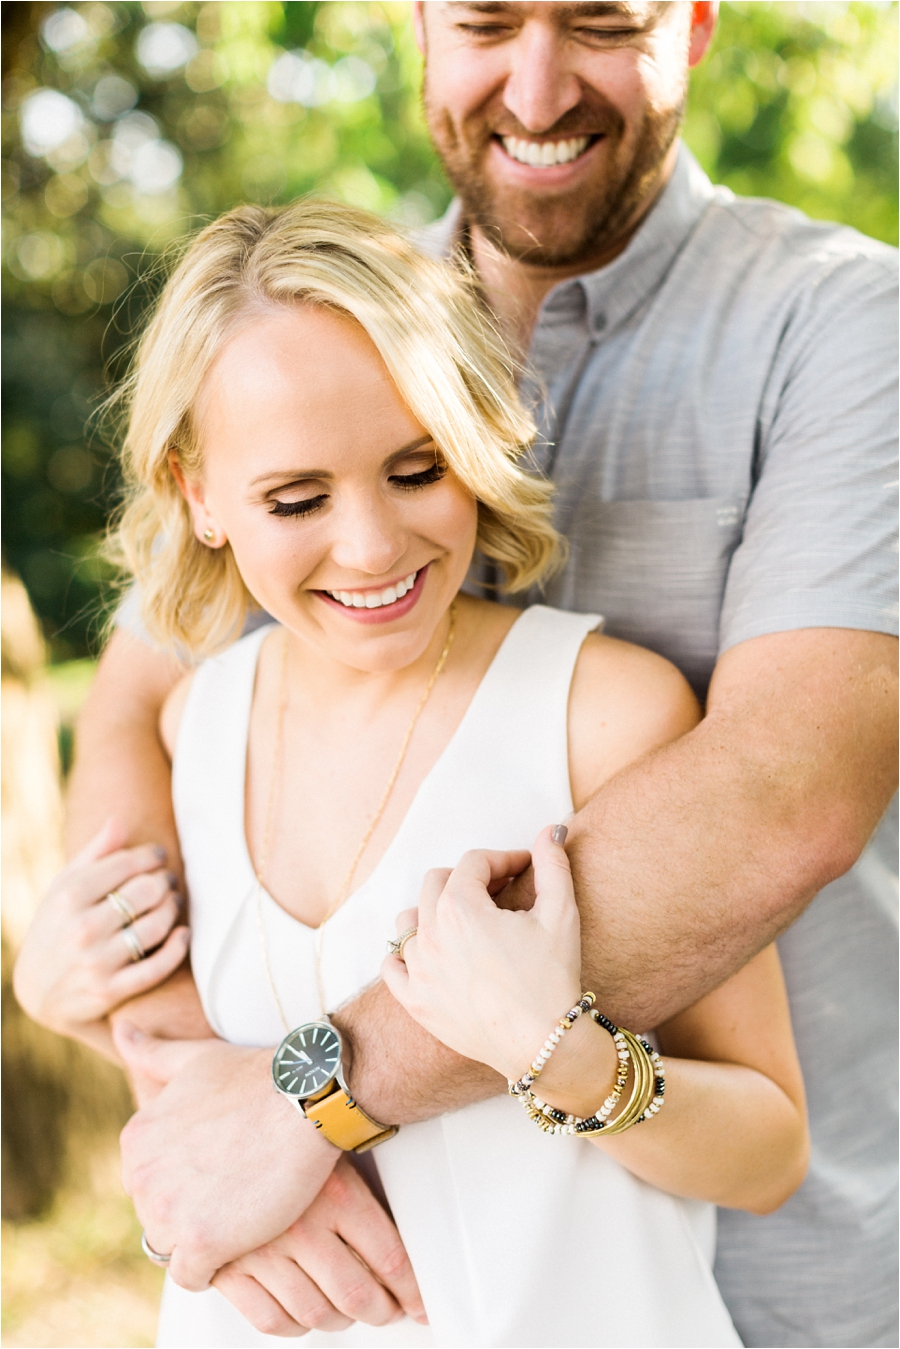 nashvile-outdoor-lifestyle-anniversary-session-by-charlottesville-film-photographer-amy-nicole-photography_0282